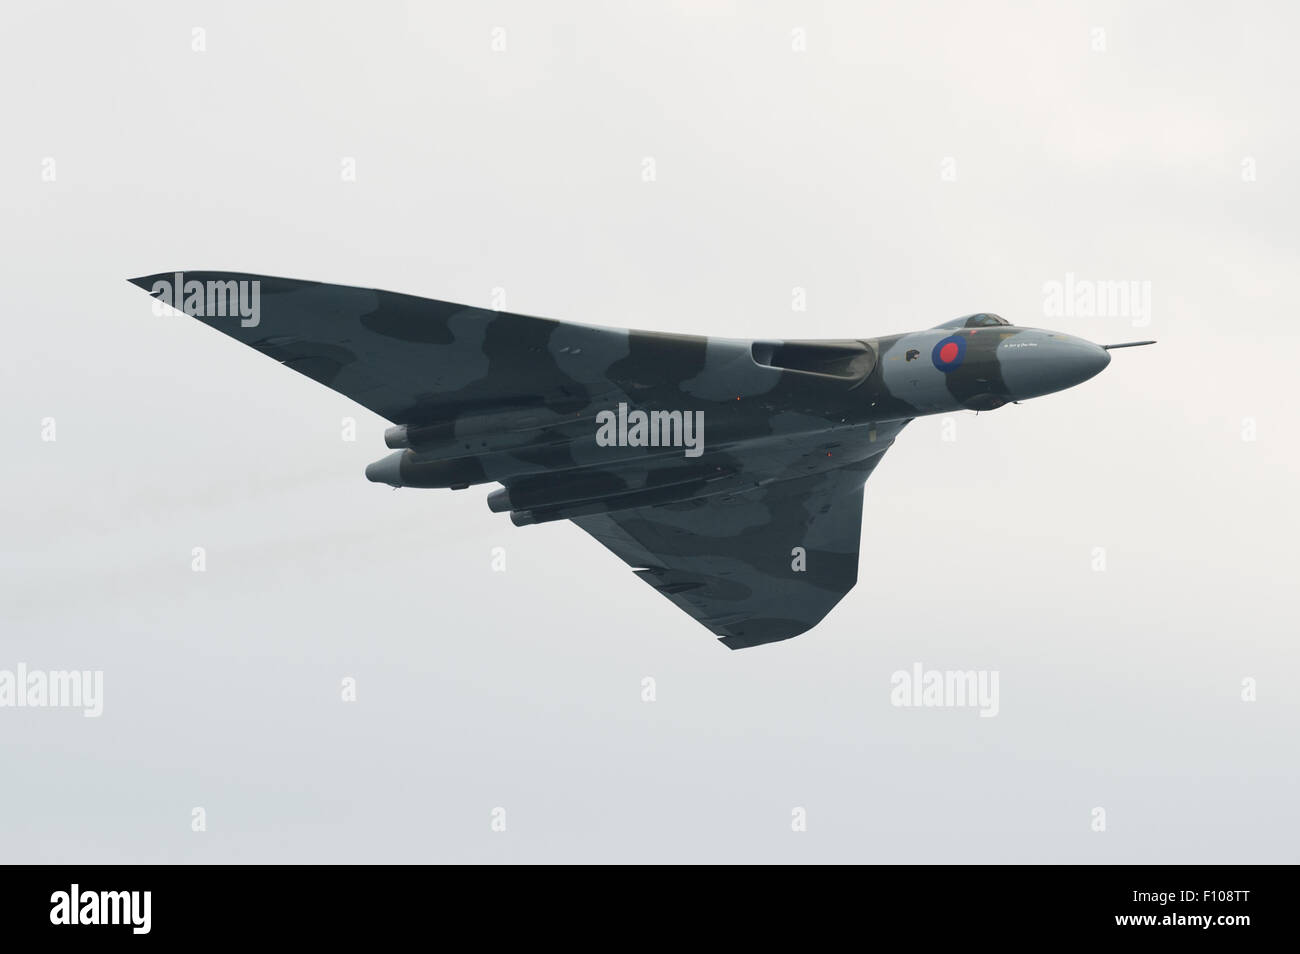 The last airworthy Avro Vulcan V-Force bomber flies for the last time at the Dawlish Air Show 2015. - Stock Image